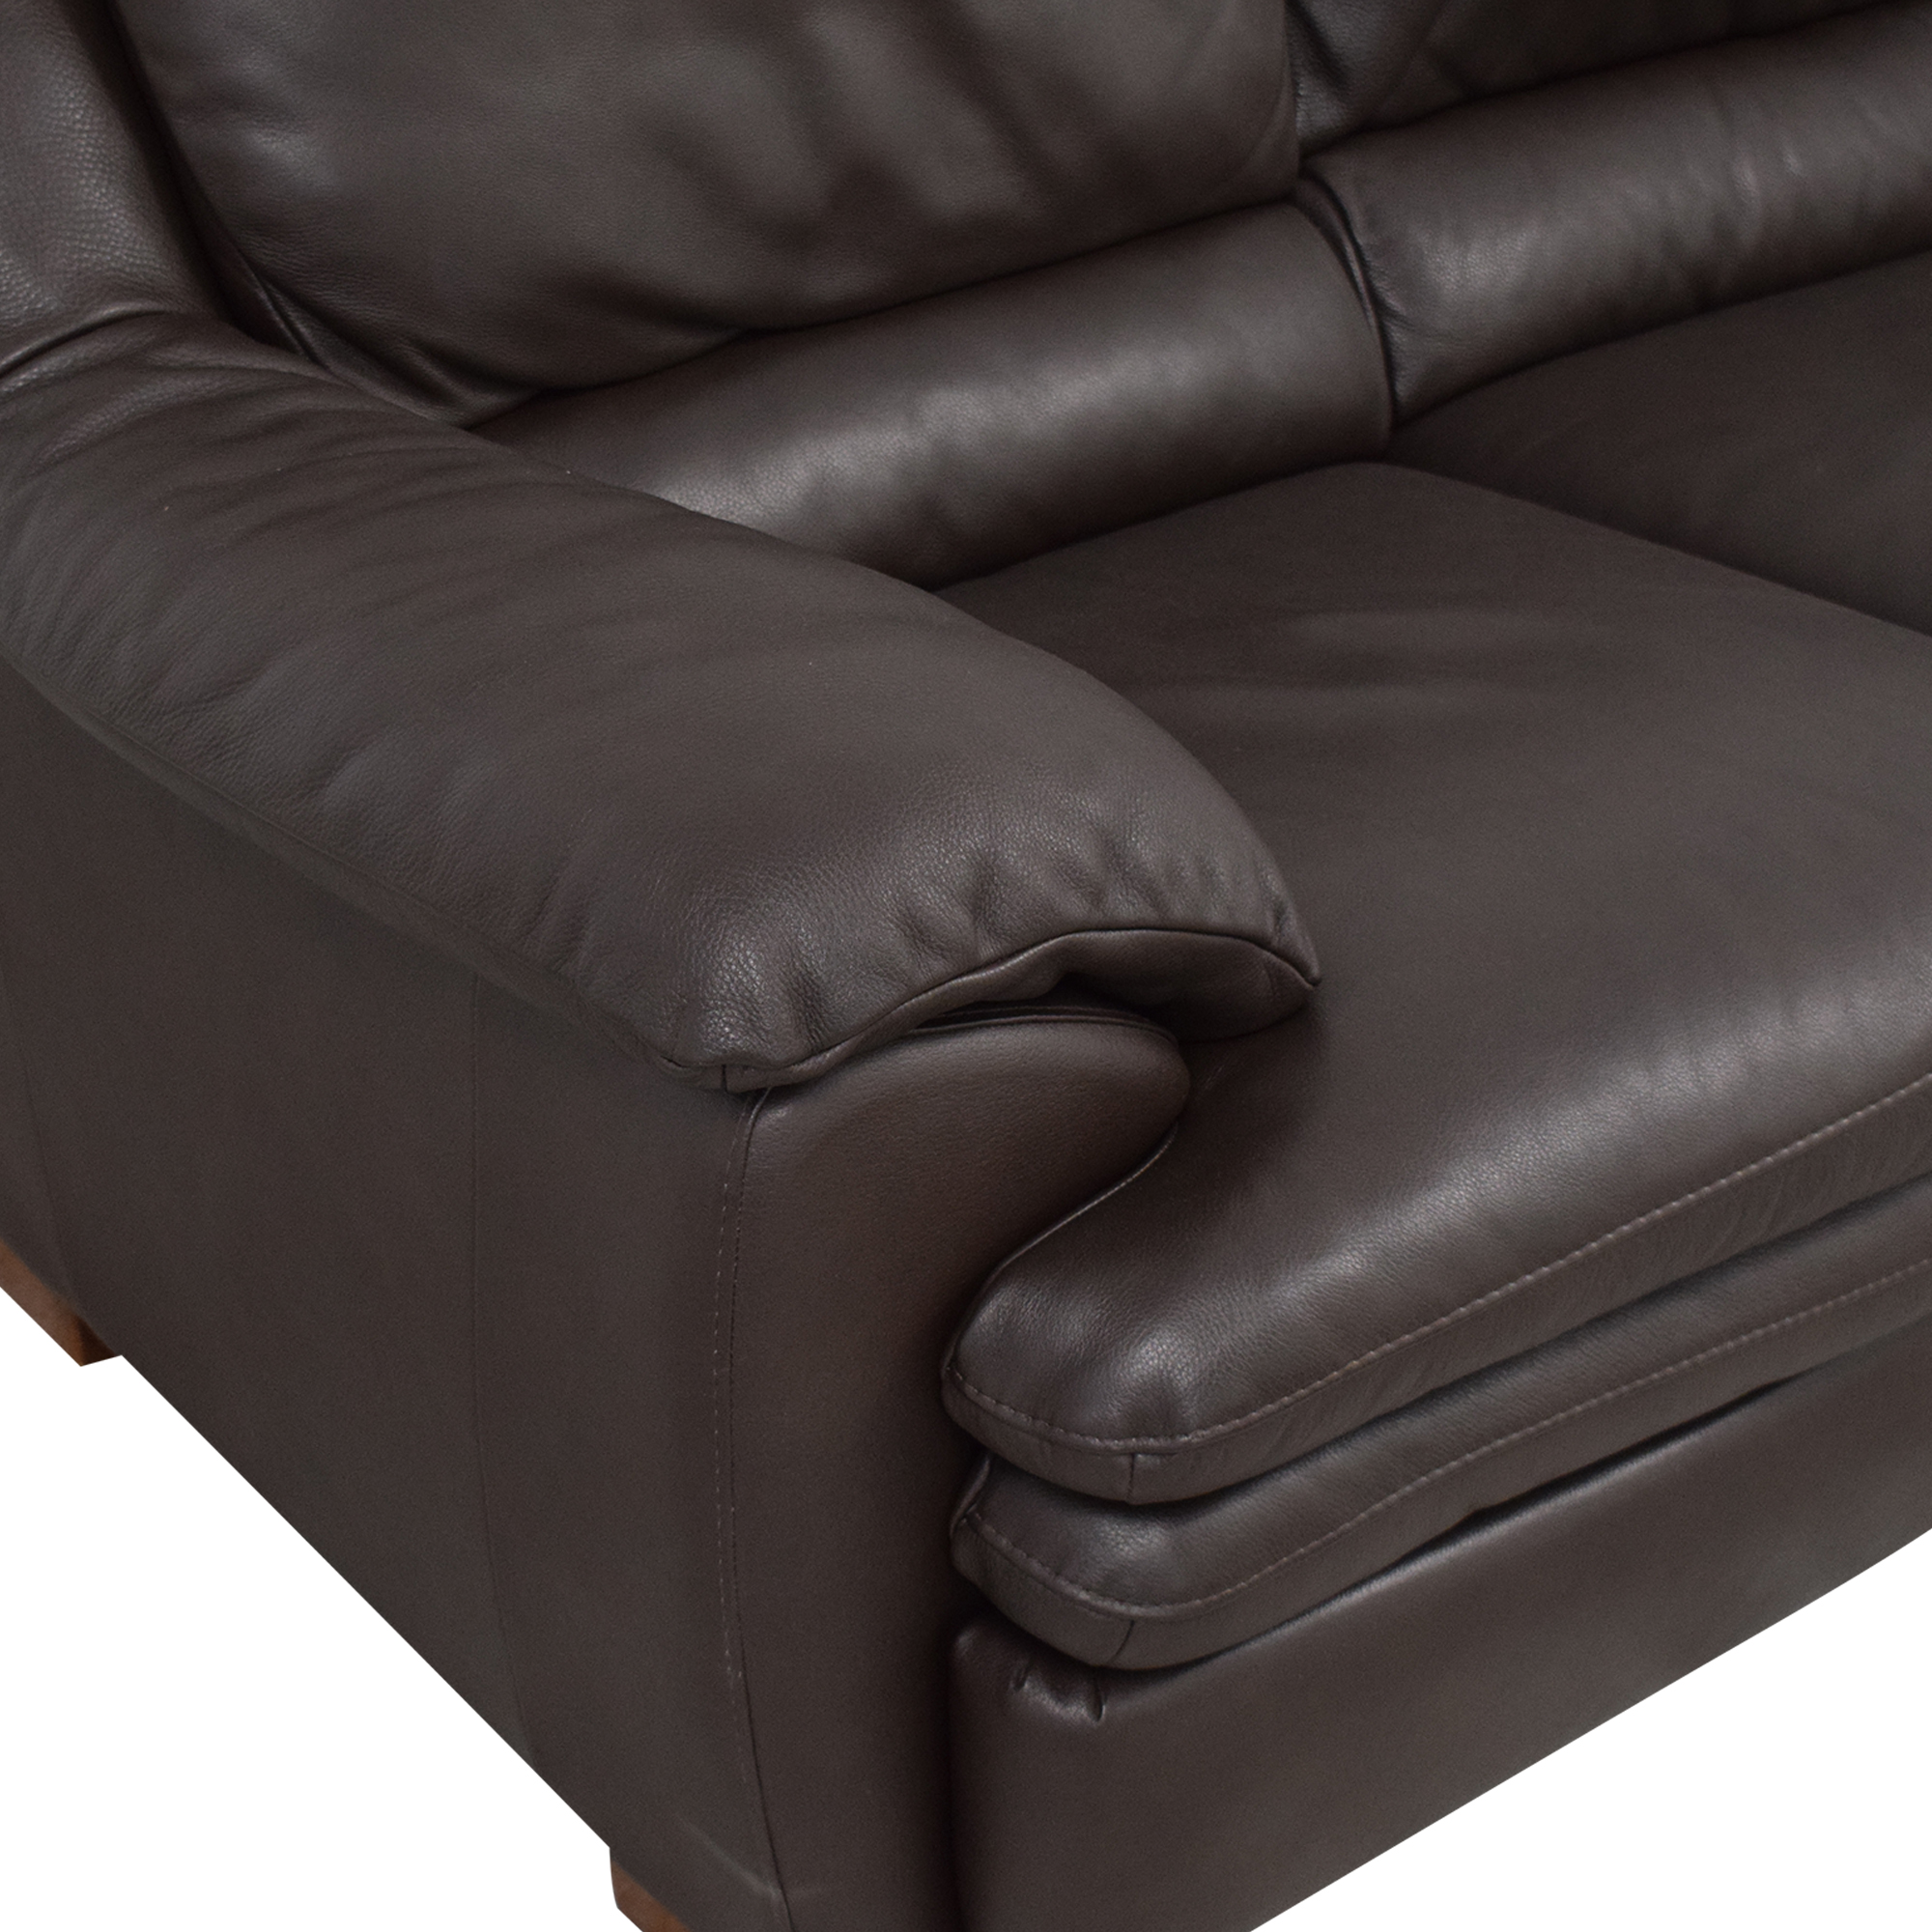 Raymour & Flanigan Raymour & Flanigan Natuzzi Reclining Sofa for sale